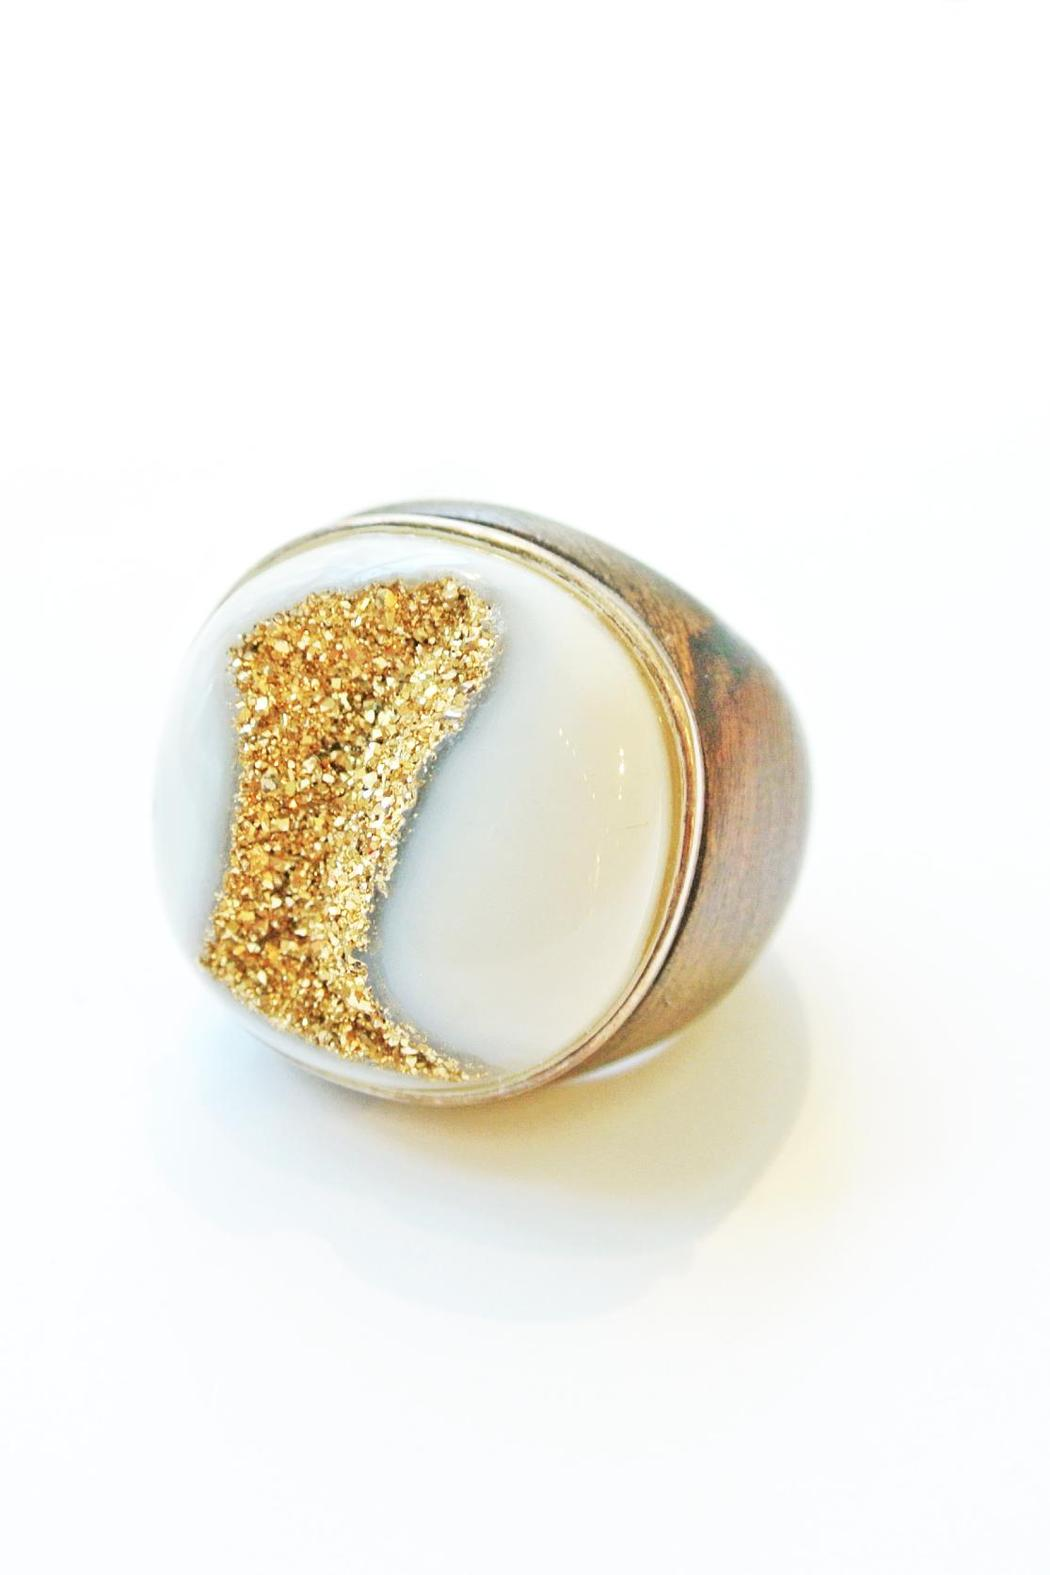 how to make a wooden ring with jewels